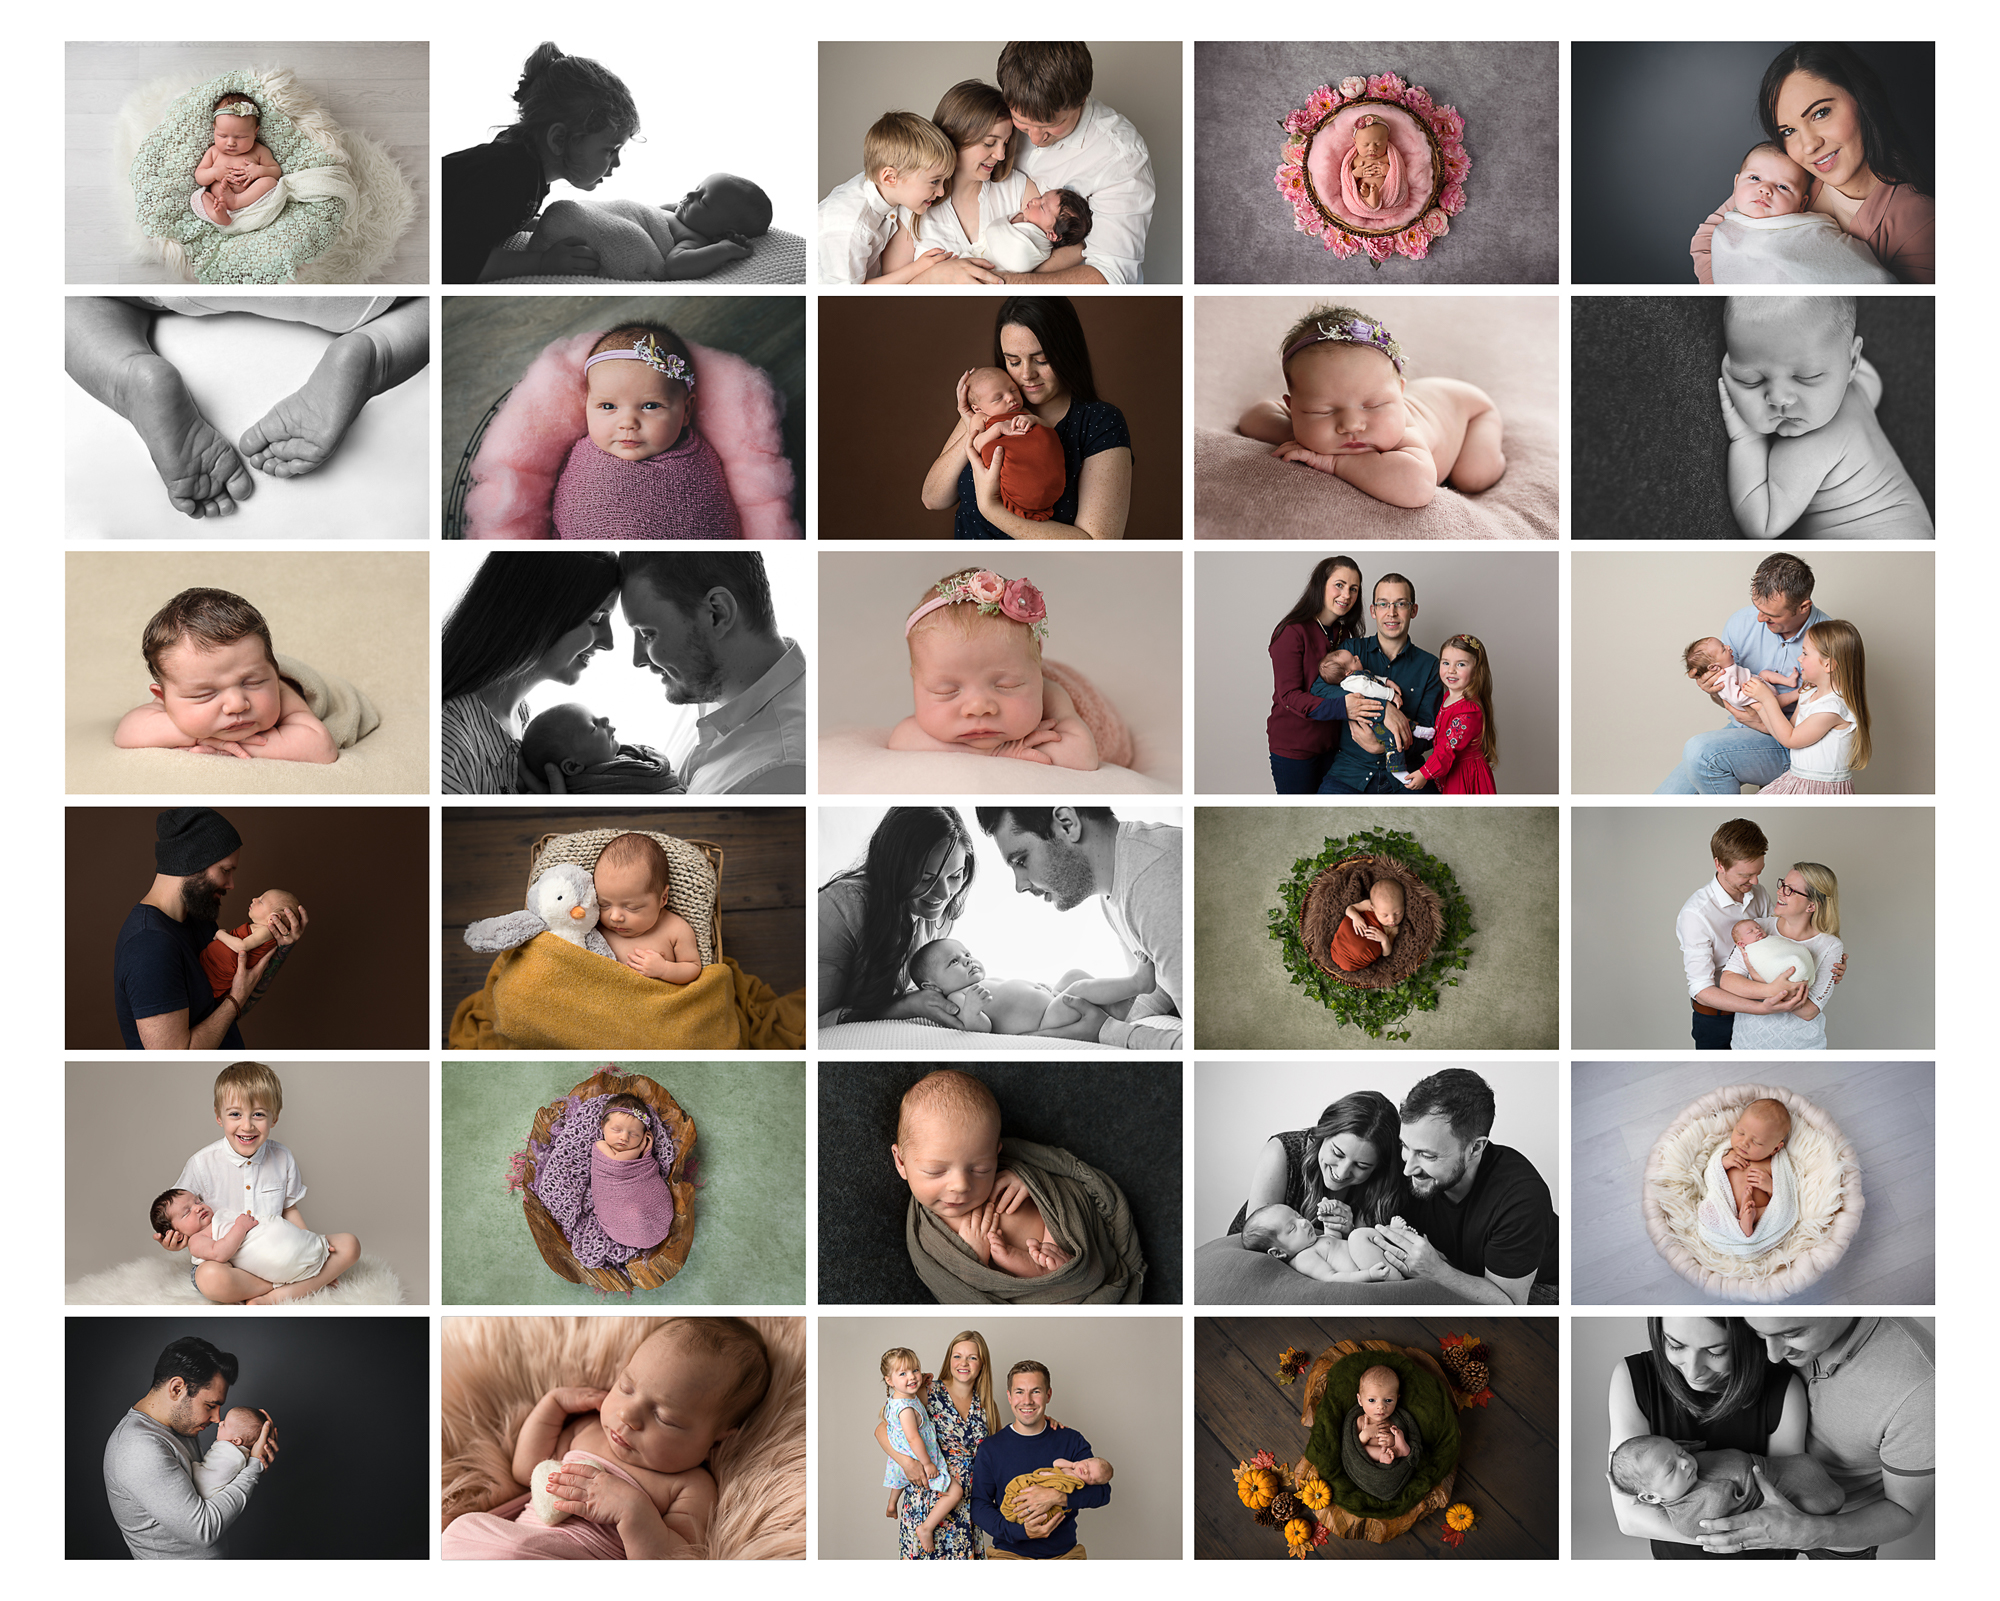 Newborn photographer south wales, near cardiff, caerphilly